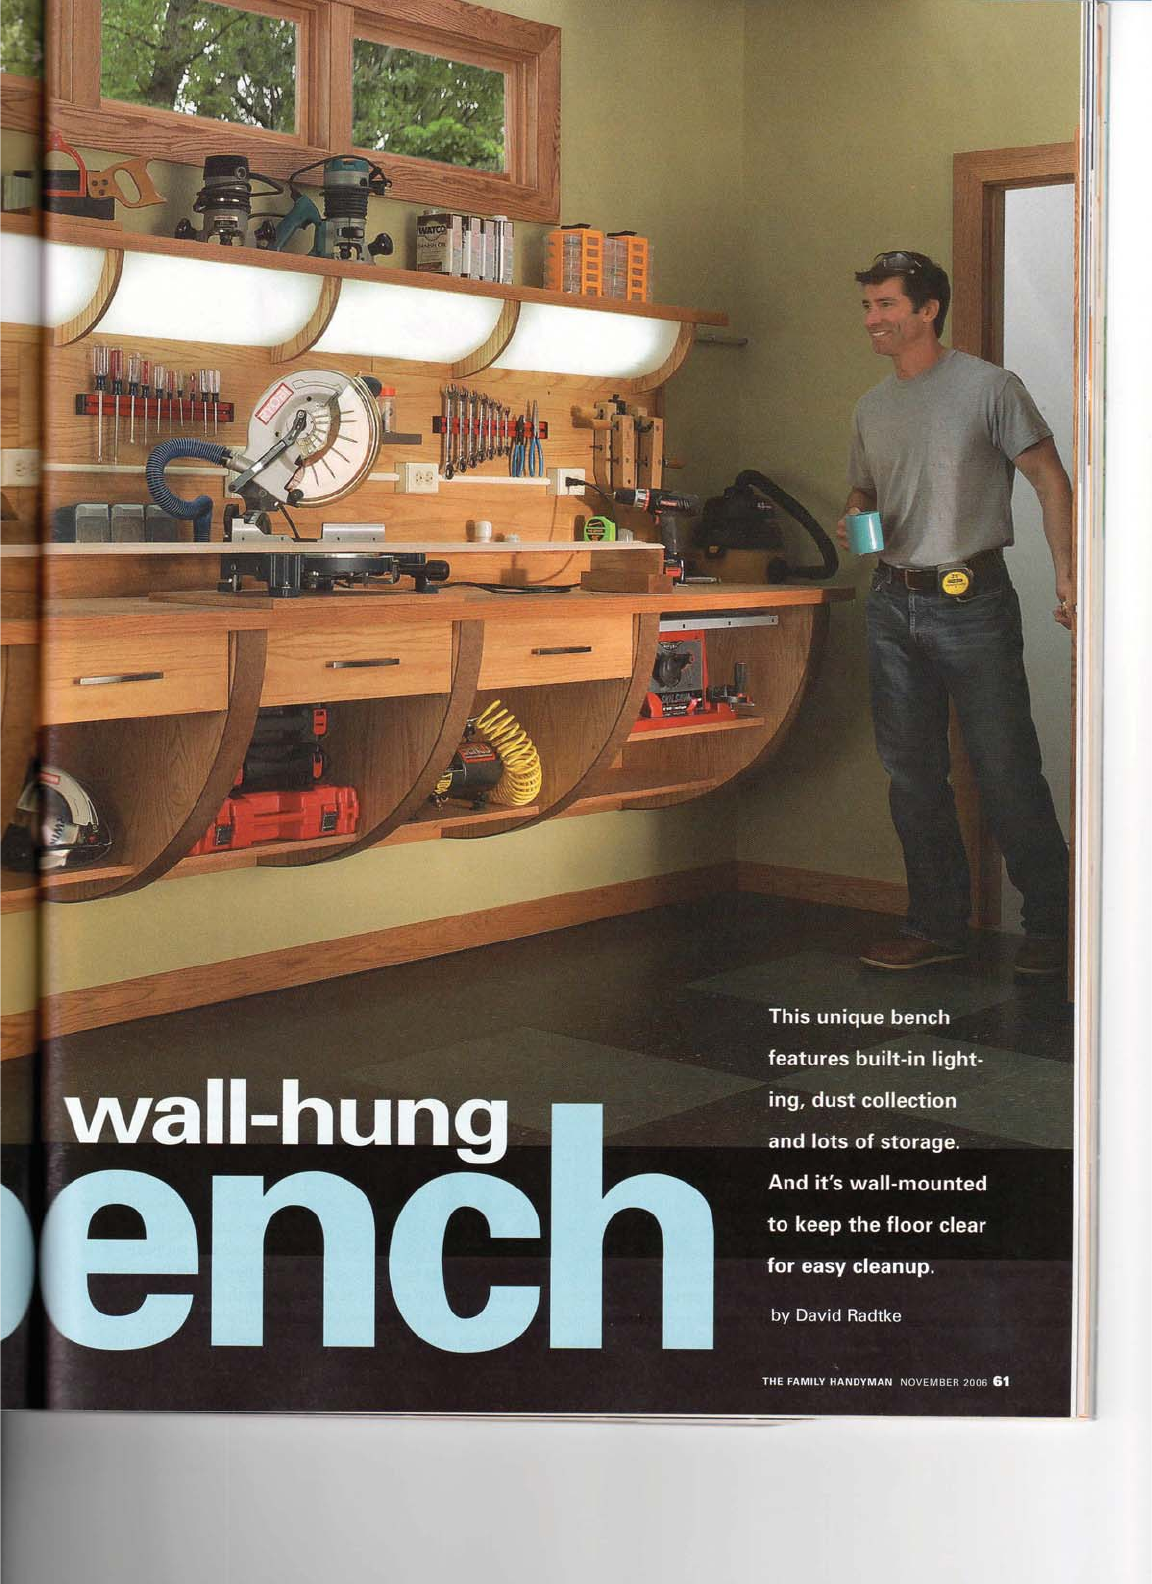 wallHangingWorkBench.pdf - Documents